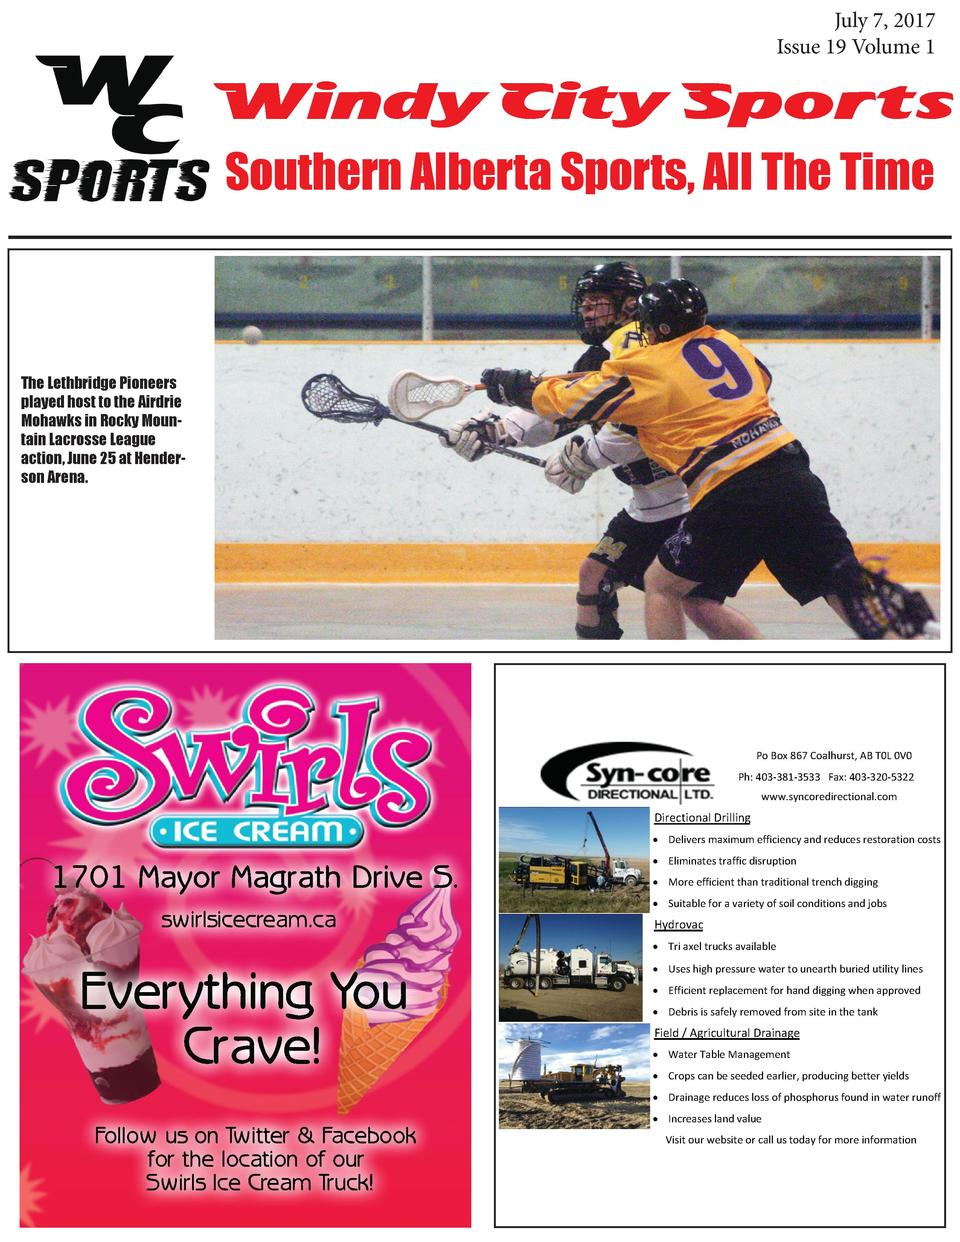 July 7, 2017 Issue 19 Volume 1  Windy City Sports Southern Alberta Sports, All The Time  The Lethbridge Pioneers played ho...